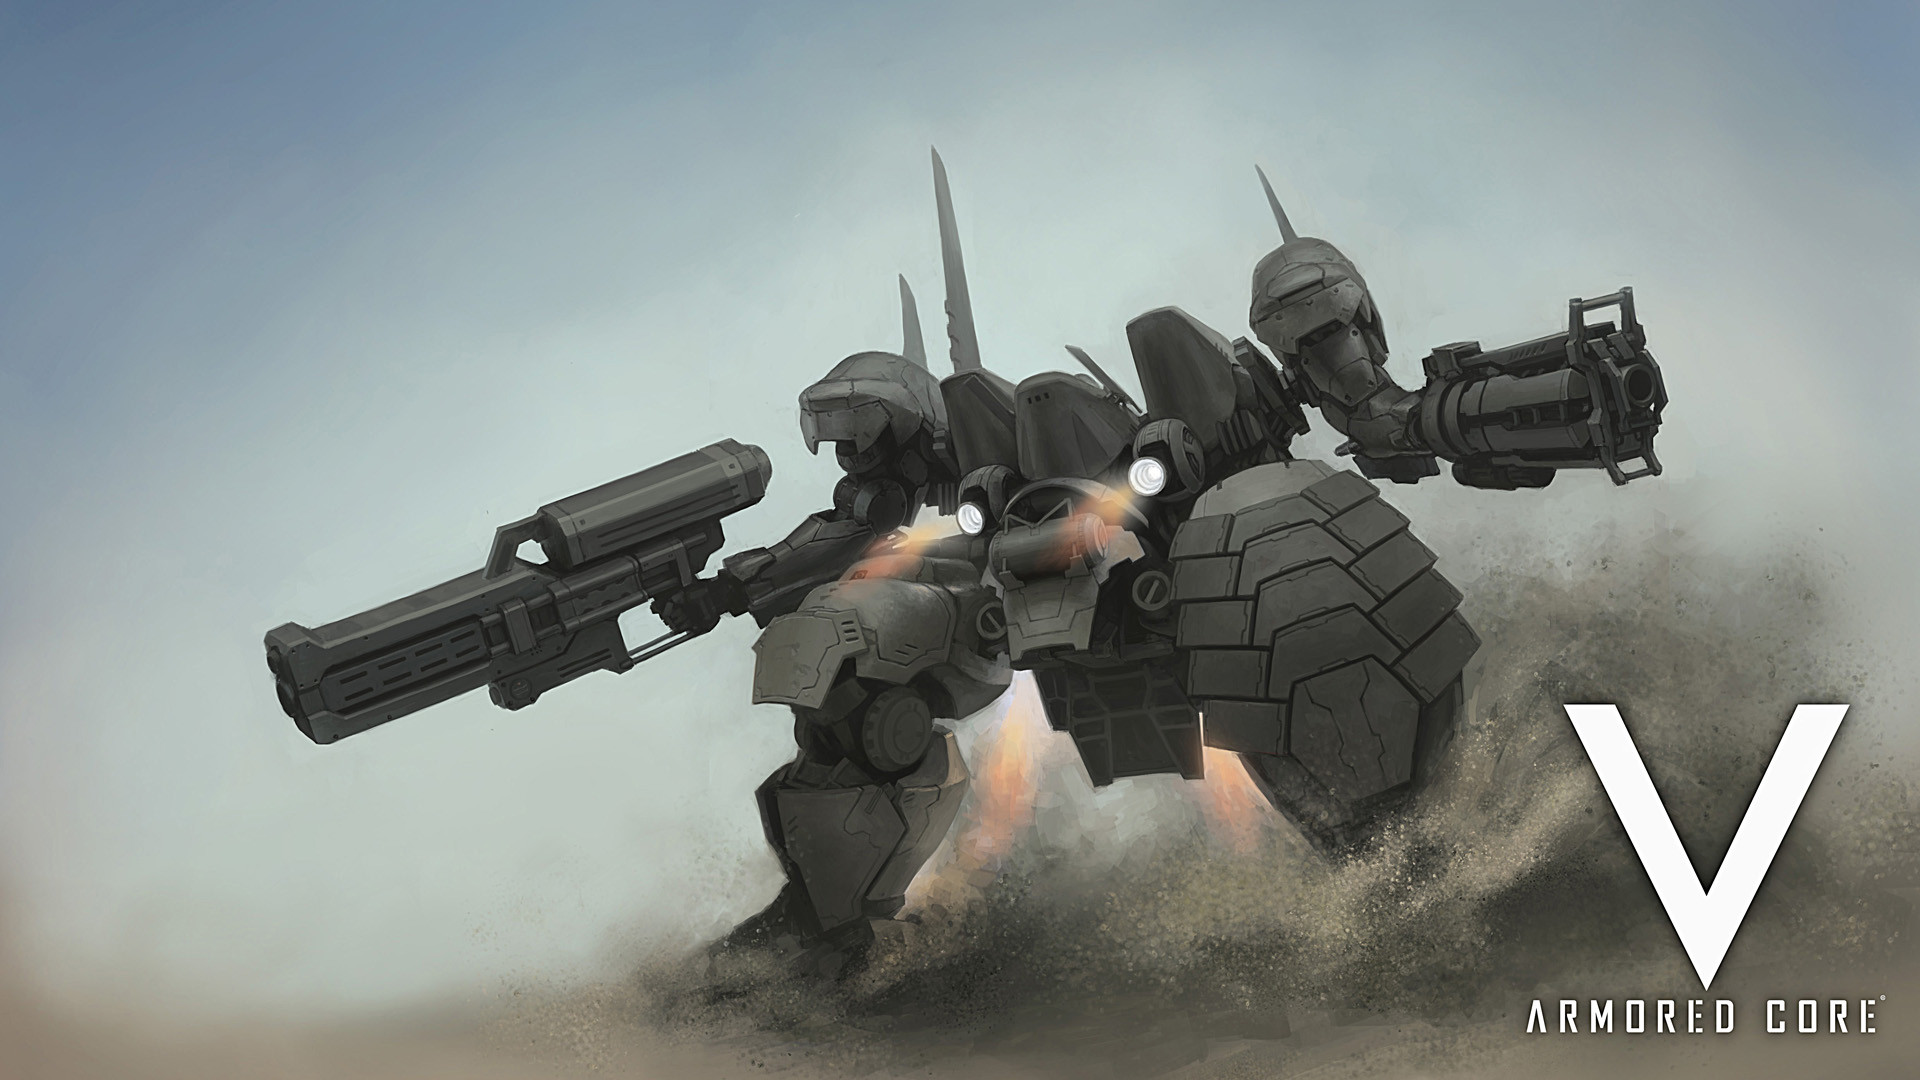 undefined Armored core v wallpaper (31 Wallpapers) | Adorable Wallpapers |  Wallpaper | Pinterest | Wallpaper